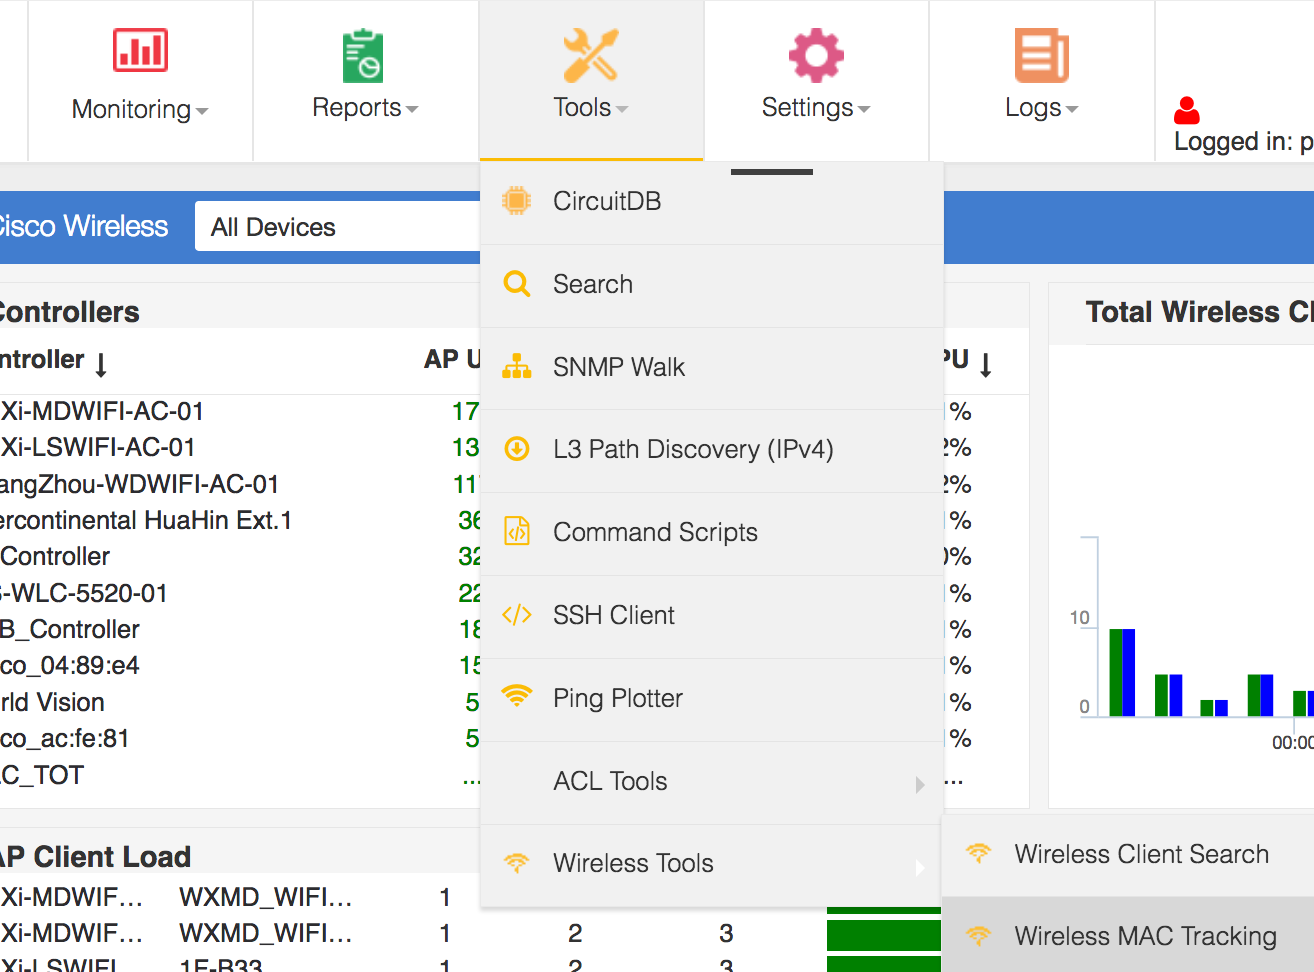 Cisco Wireless client search and tracking tools - Network Discovery